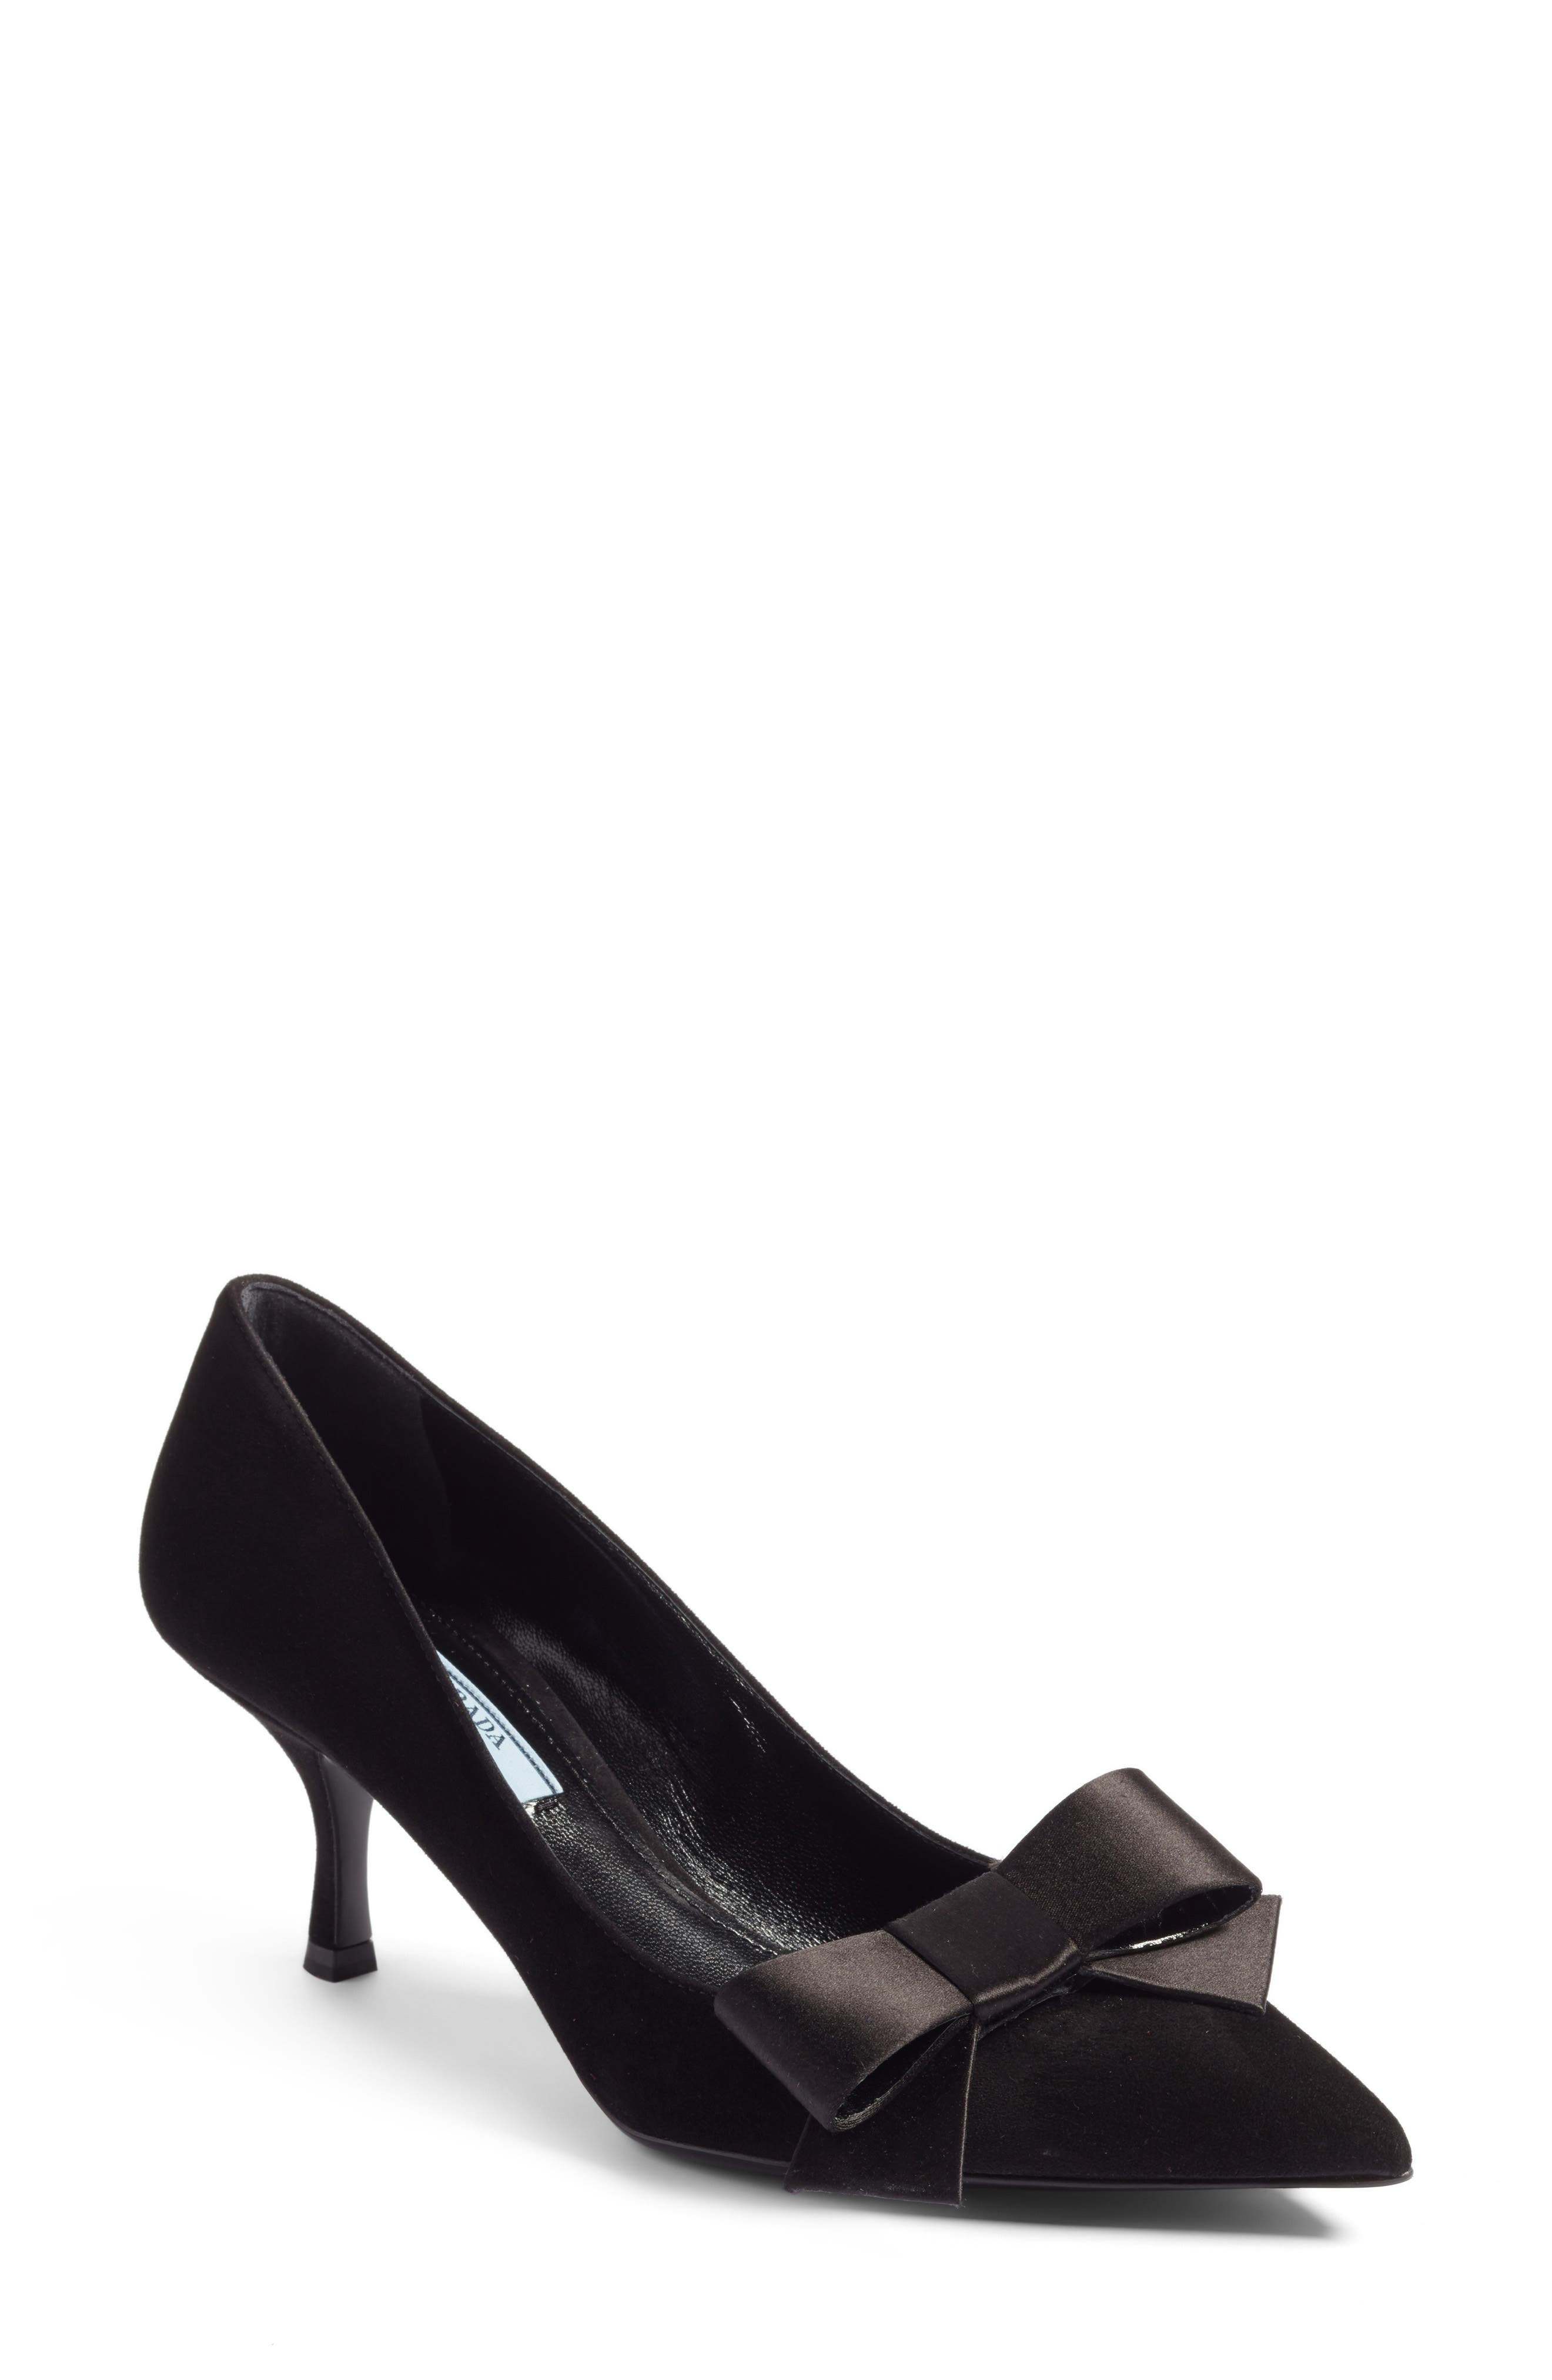 Bow Pointy Toe Pump,                             Main thumbnail 1, color,